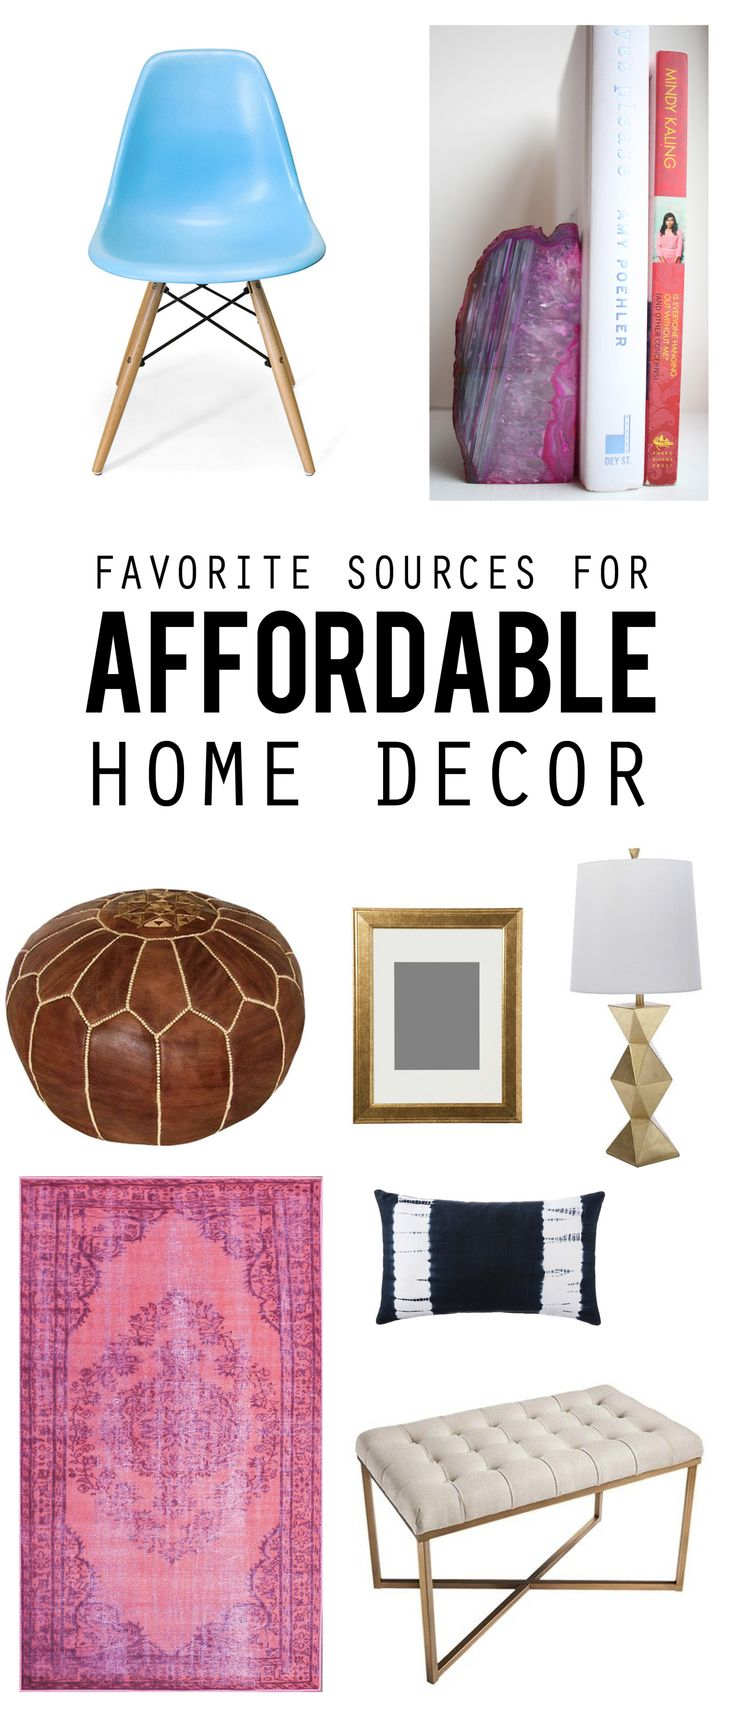 17 Best Ideas About Tj Maxx On Pinterest Apartment Bedroom Decor Cozy Apartment Decor And